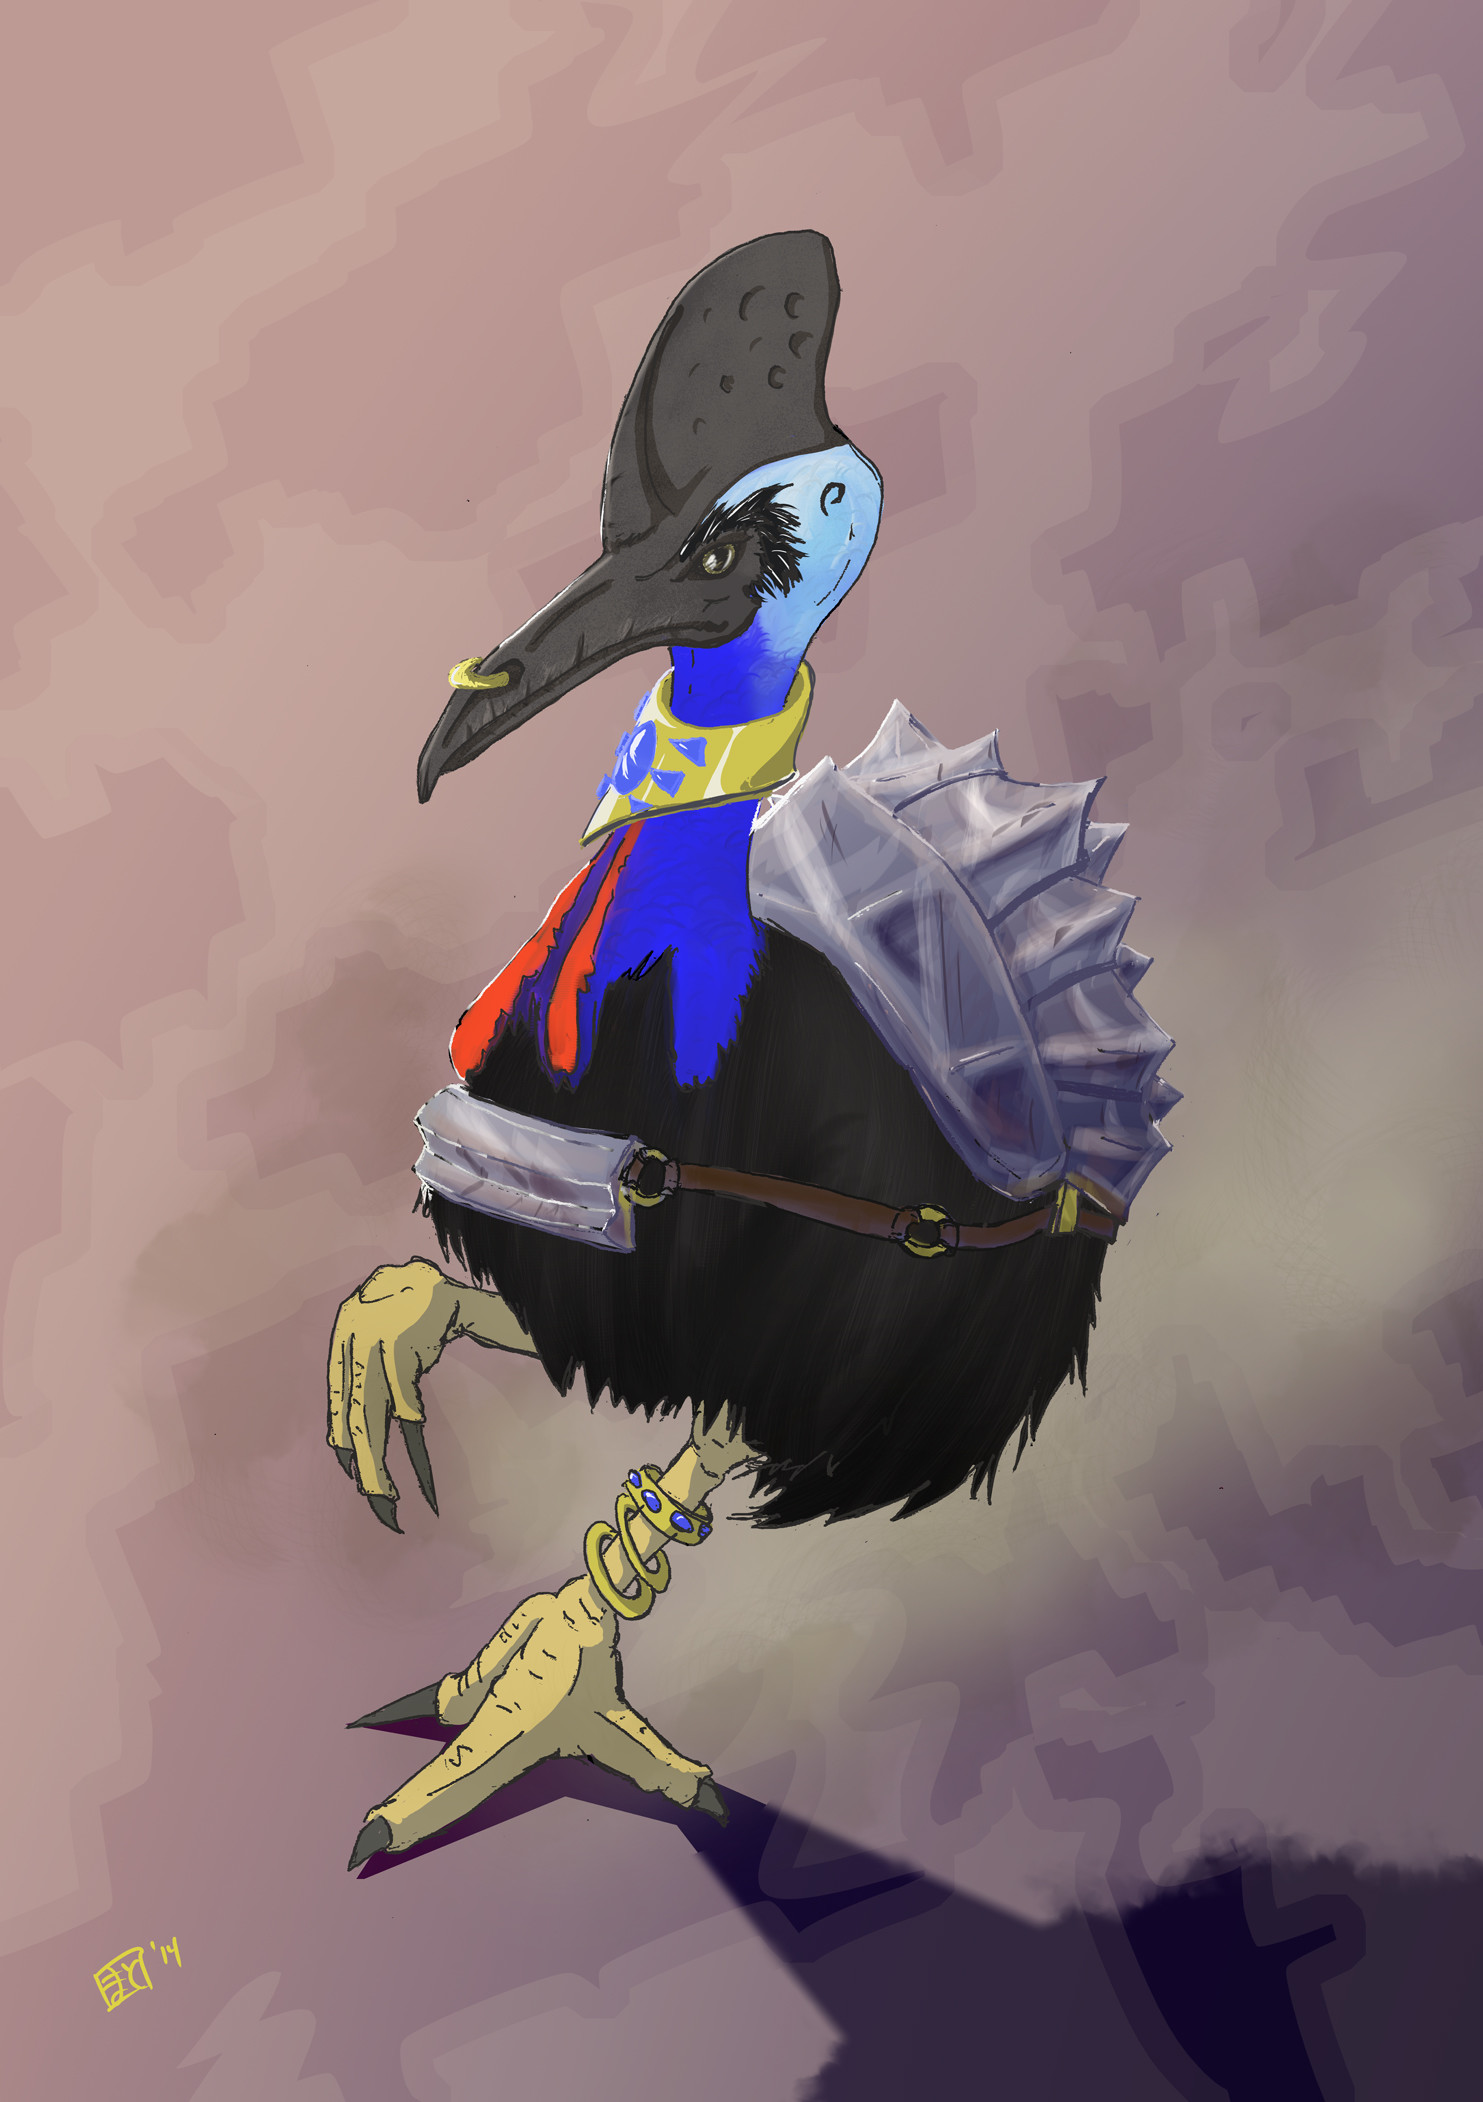 Matt christopherson matthew christopherson cassowary warrior